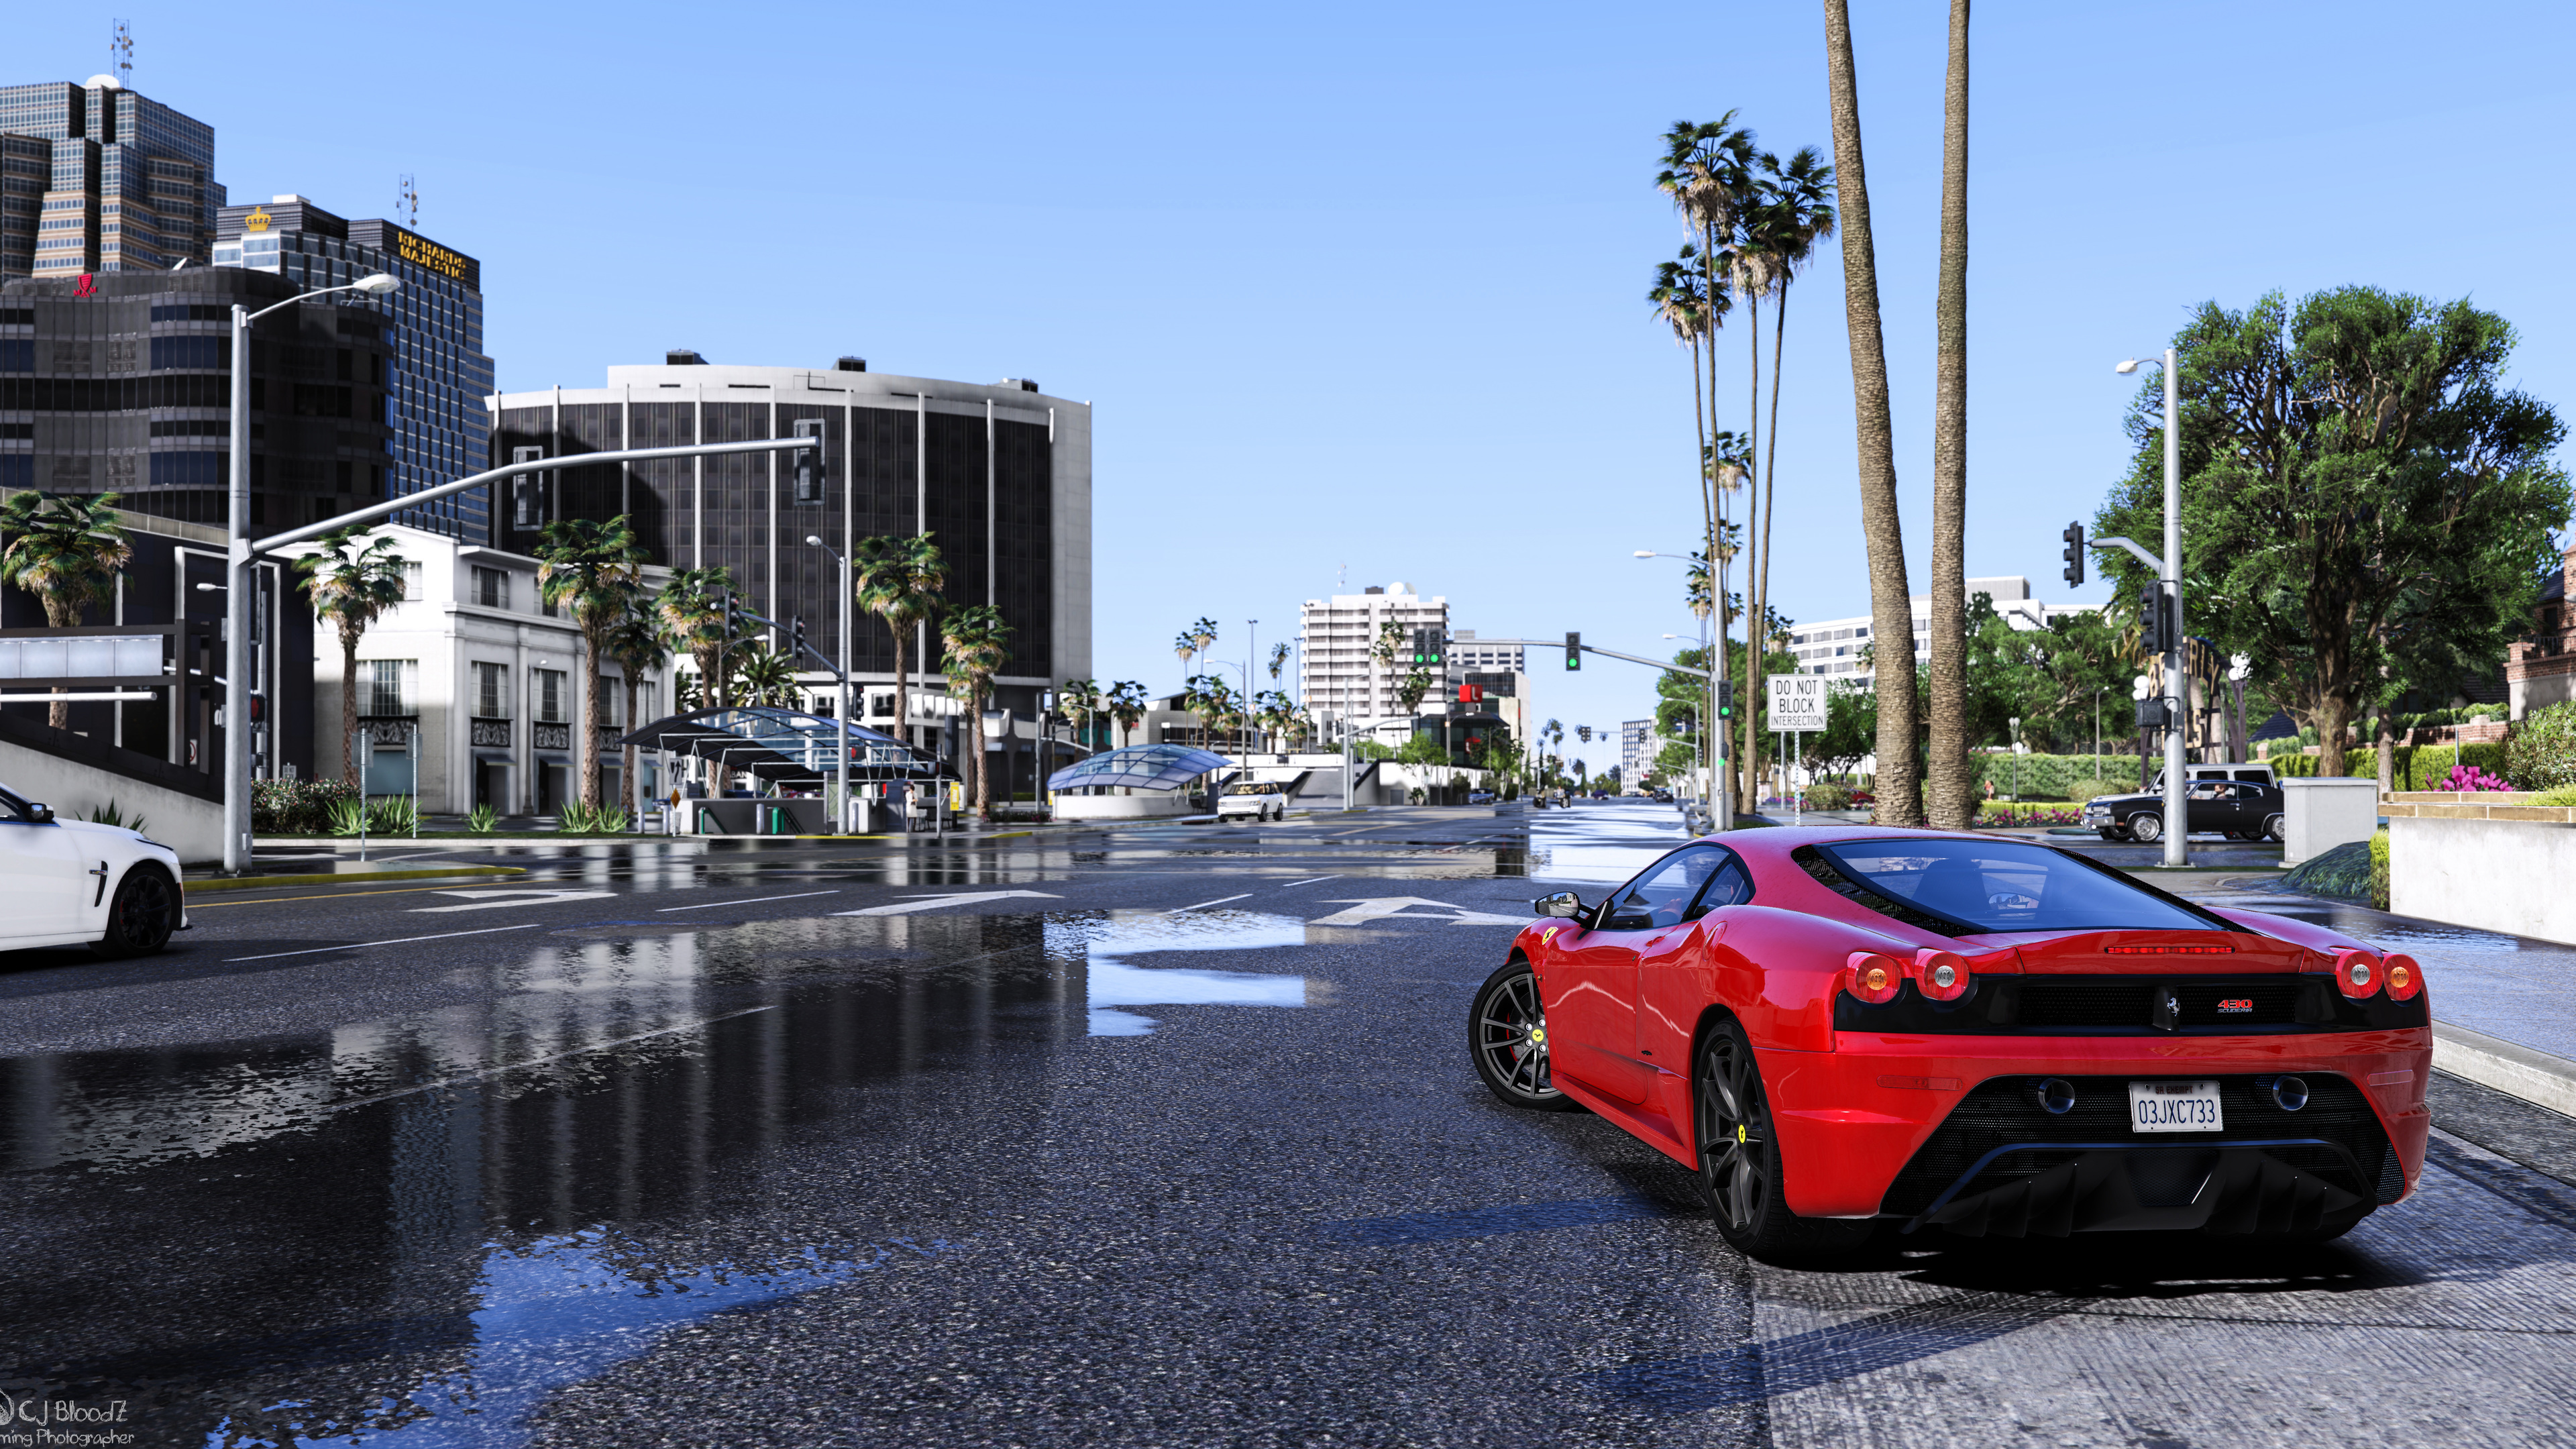 Wallpaper 4k Gta V Ferrari 8k 4k Wallpapers Cars Wallpapers Games